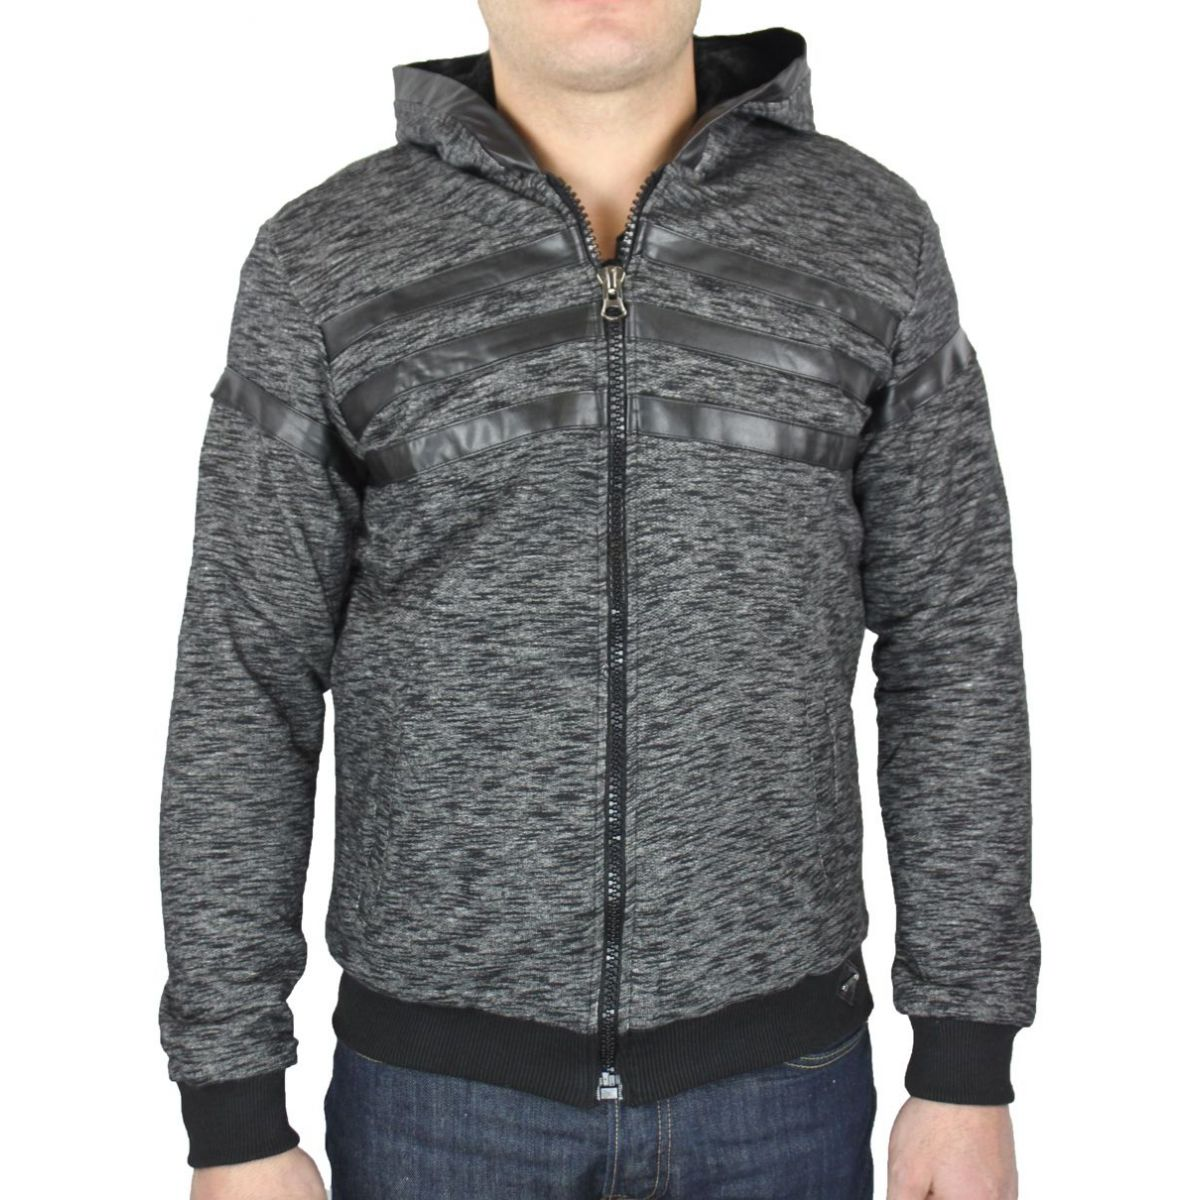 be5bede118 Sweat zippé homme chiné - MacktenFashion.com